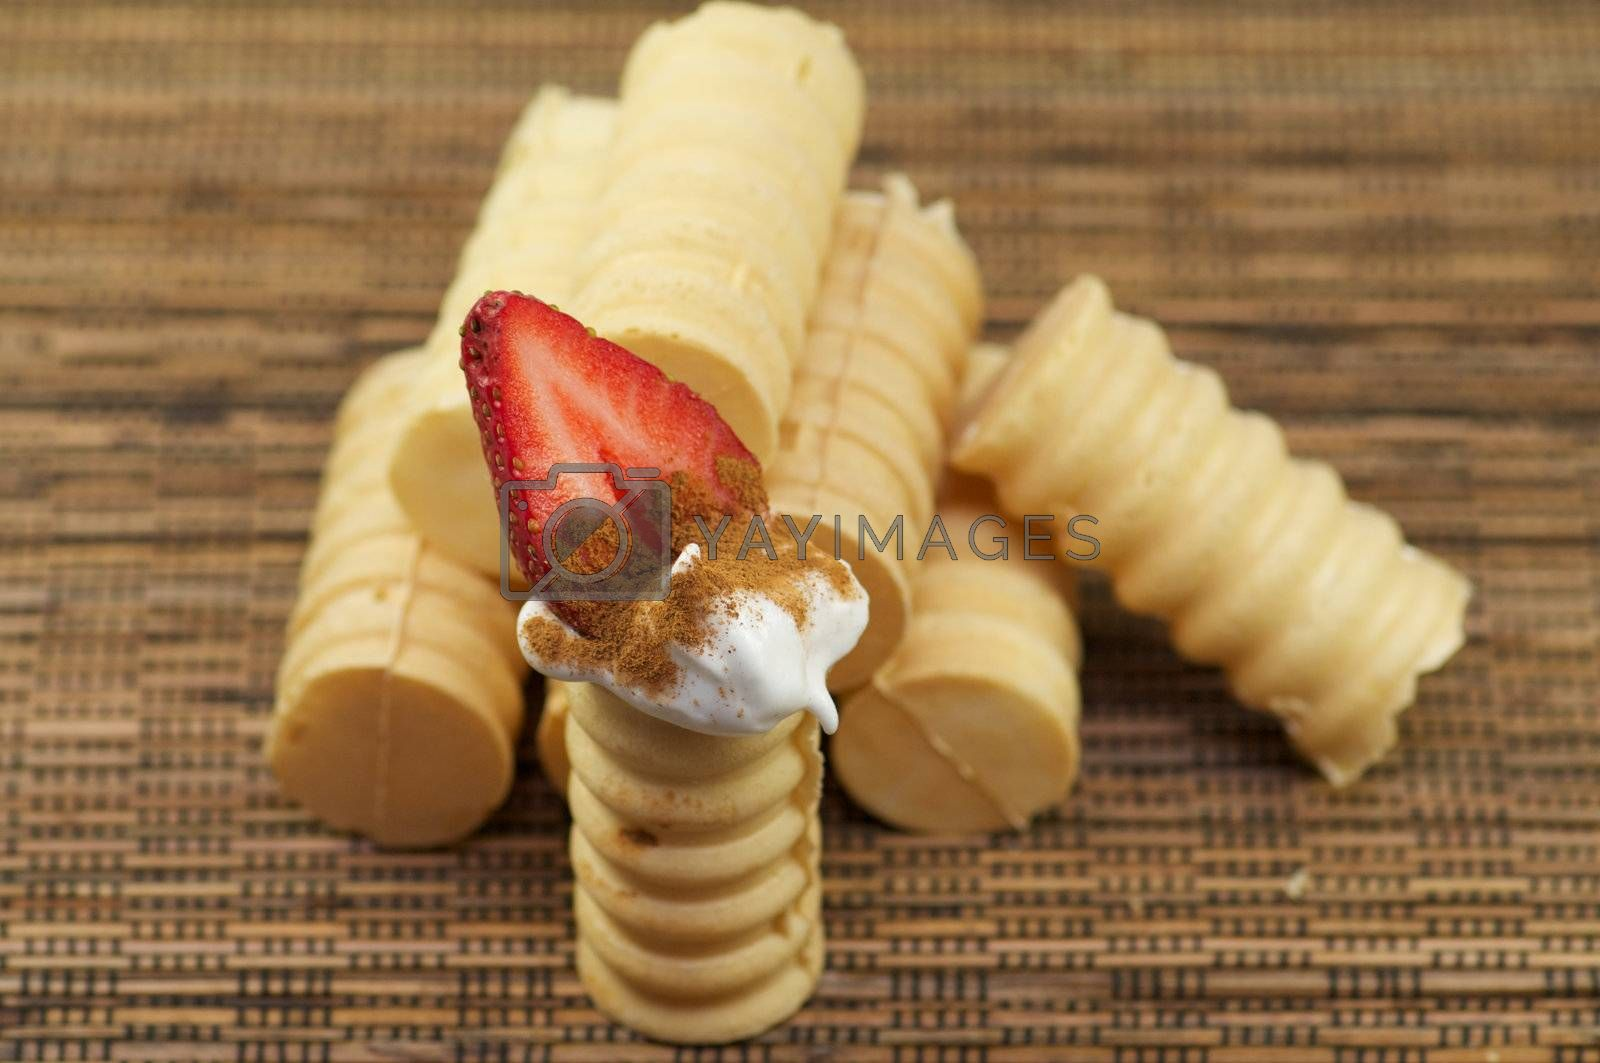 Tubules from shortcake dough with whipped cream and strawberry